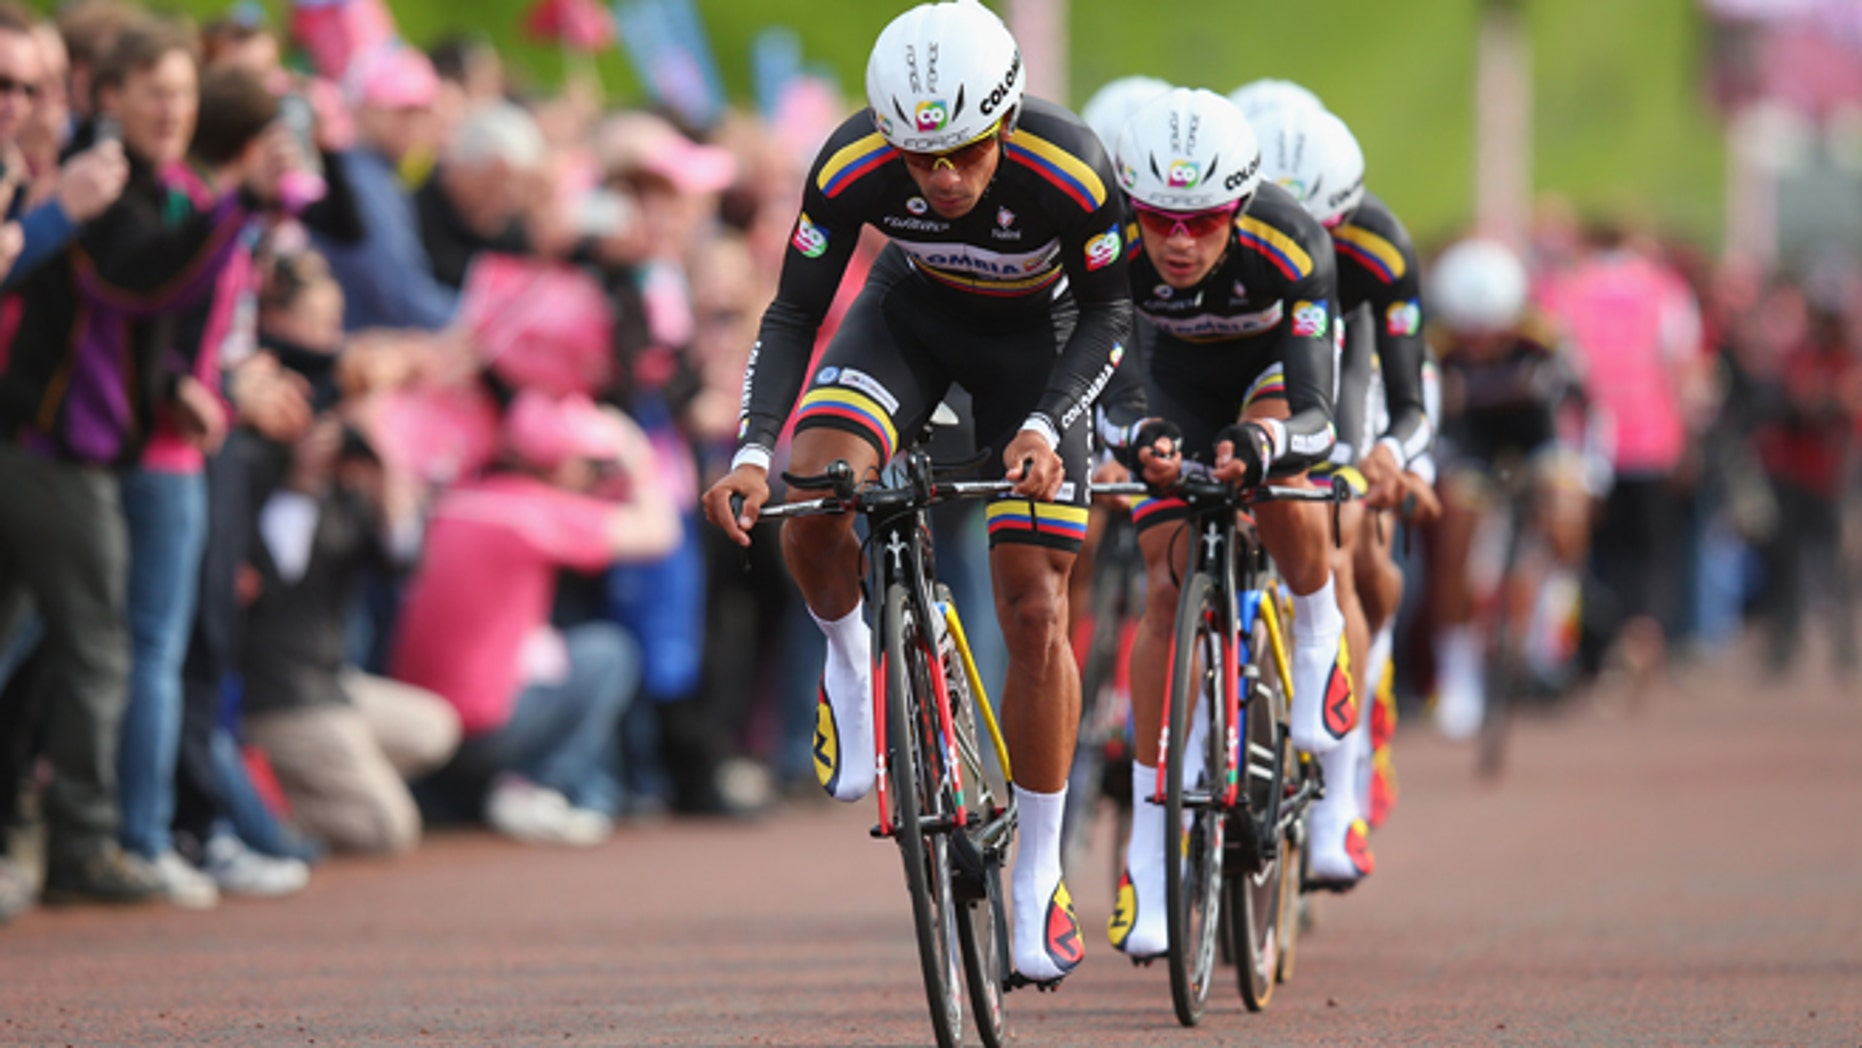 Team Colombia during the first stage of the 2014 Giro d'Italia in Belfast, Northern Ireland.